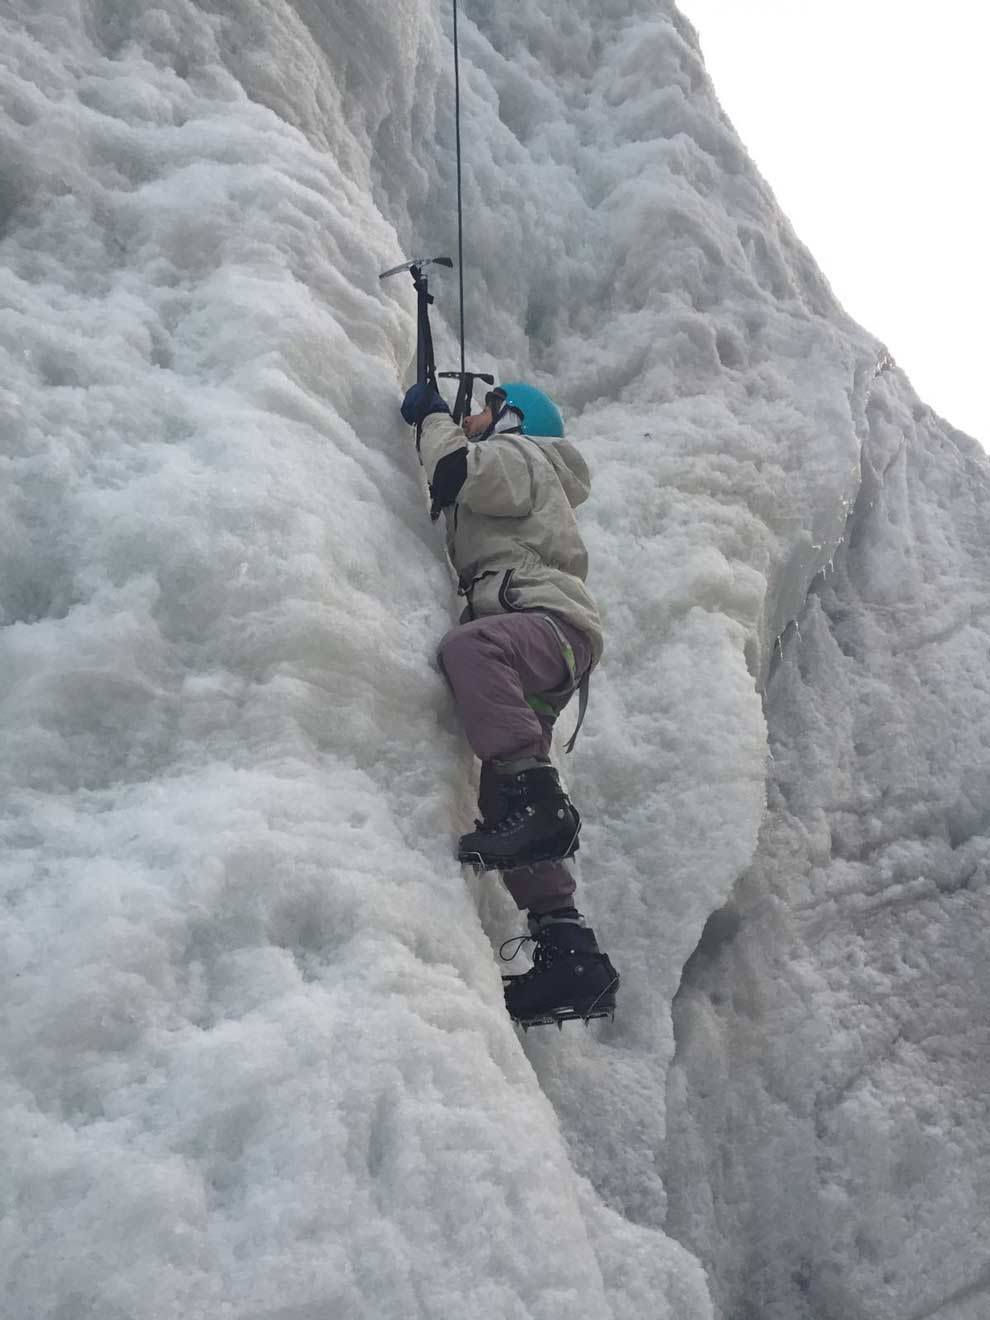 Jonathan was a BOSS on the ice wall!